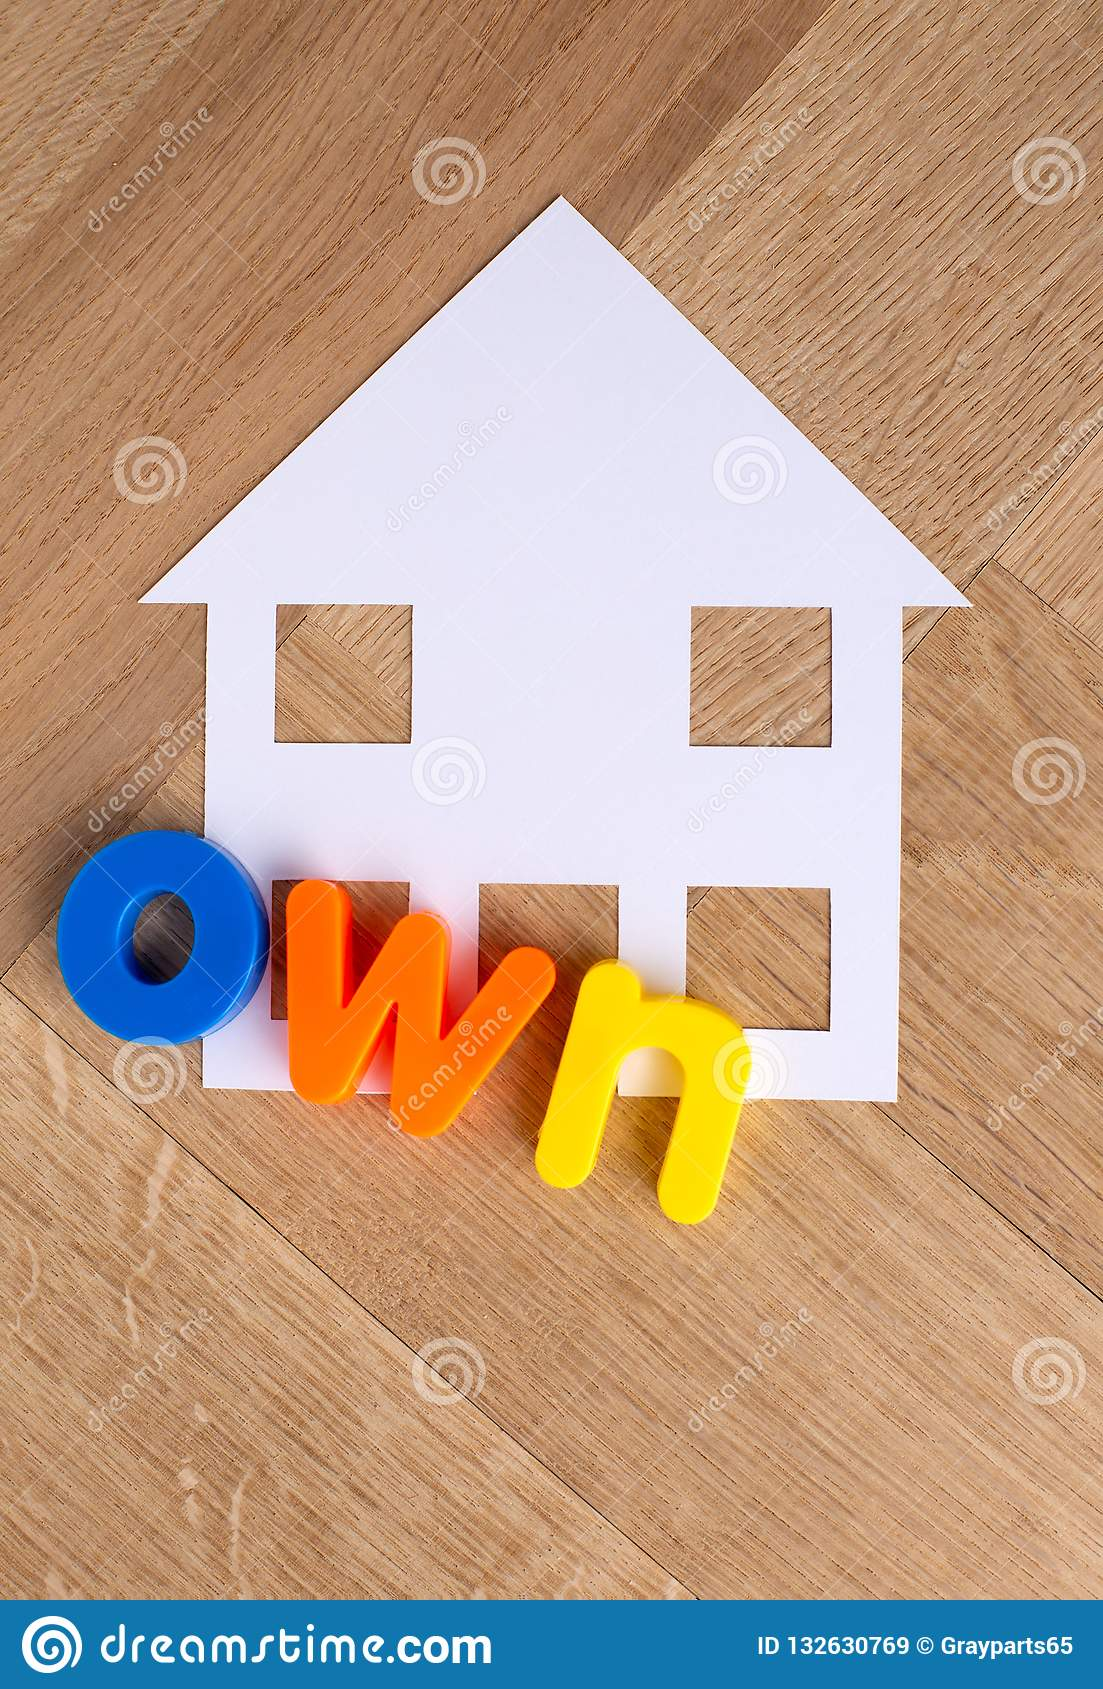 Own House Symbol On Wooden Background Stock Image - Image of sign